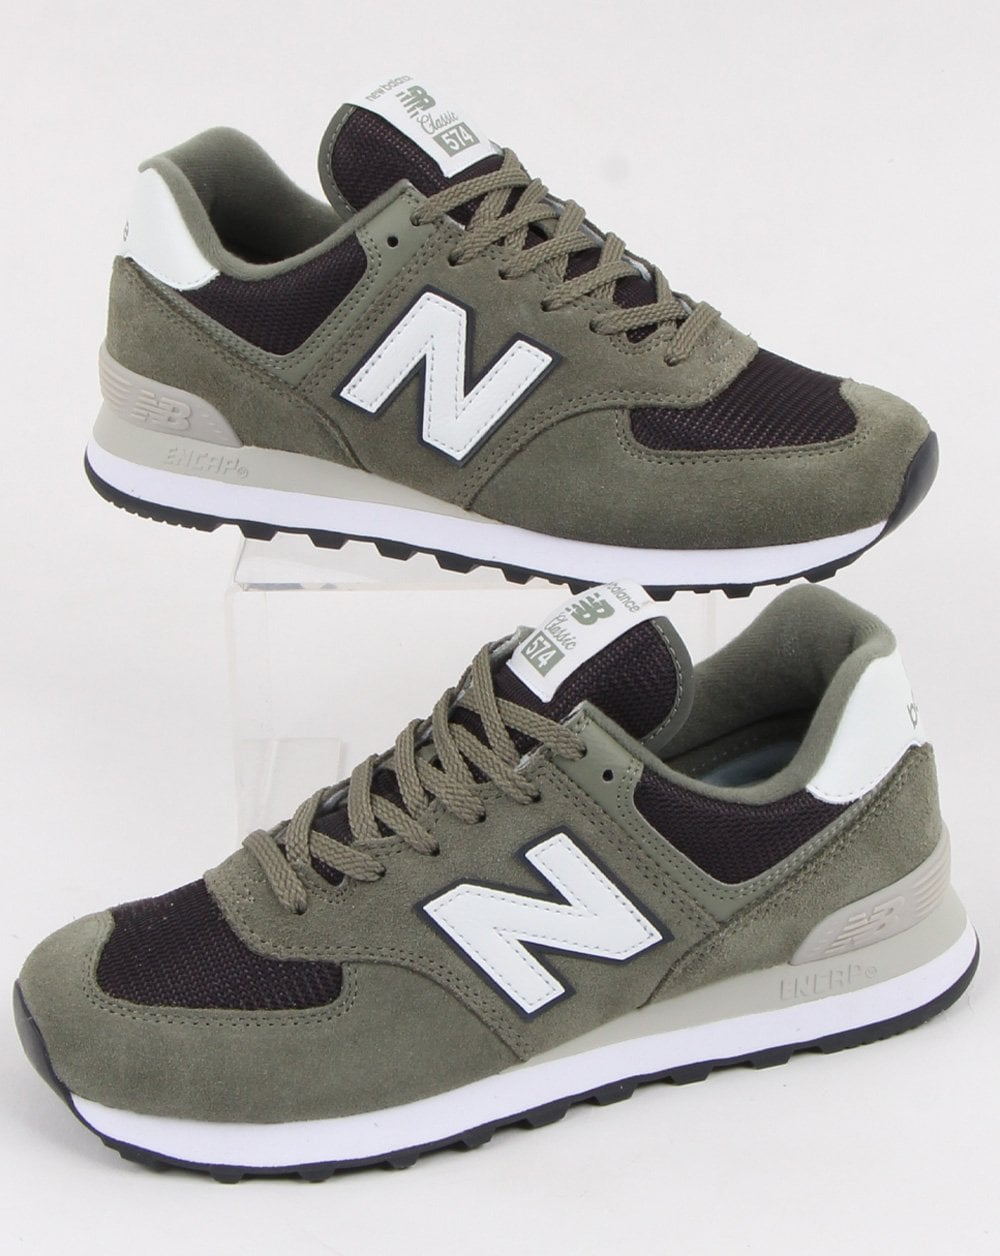 best service a7410 1a46a New Balance 574 Trainers Khaki Green